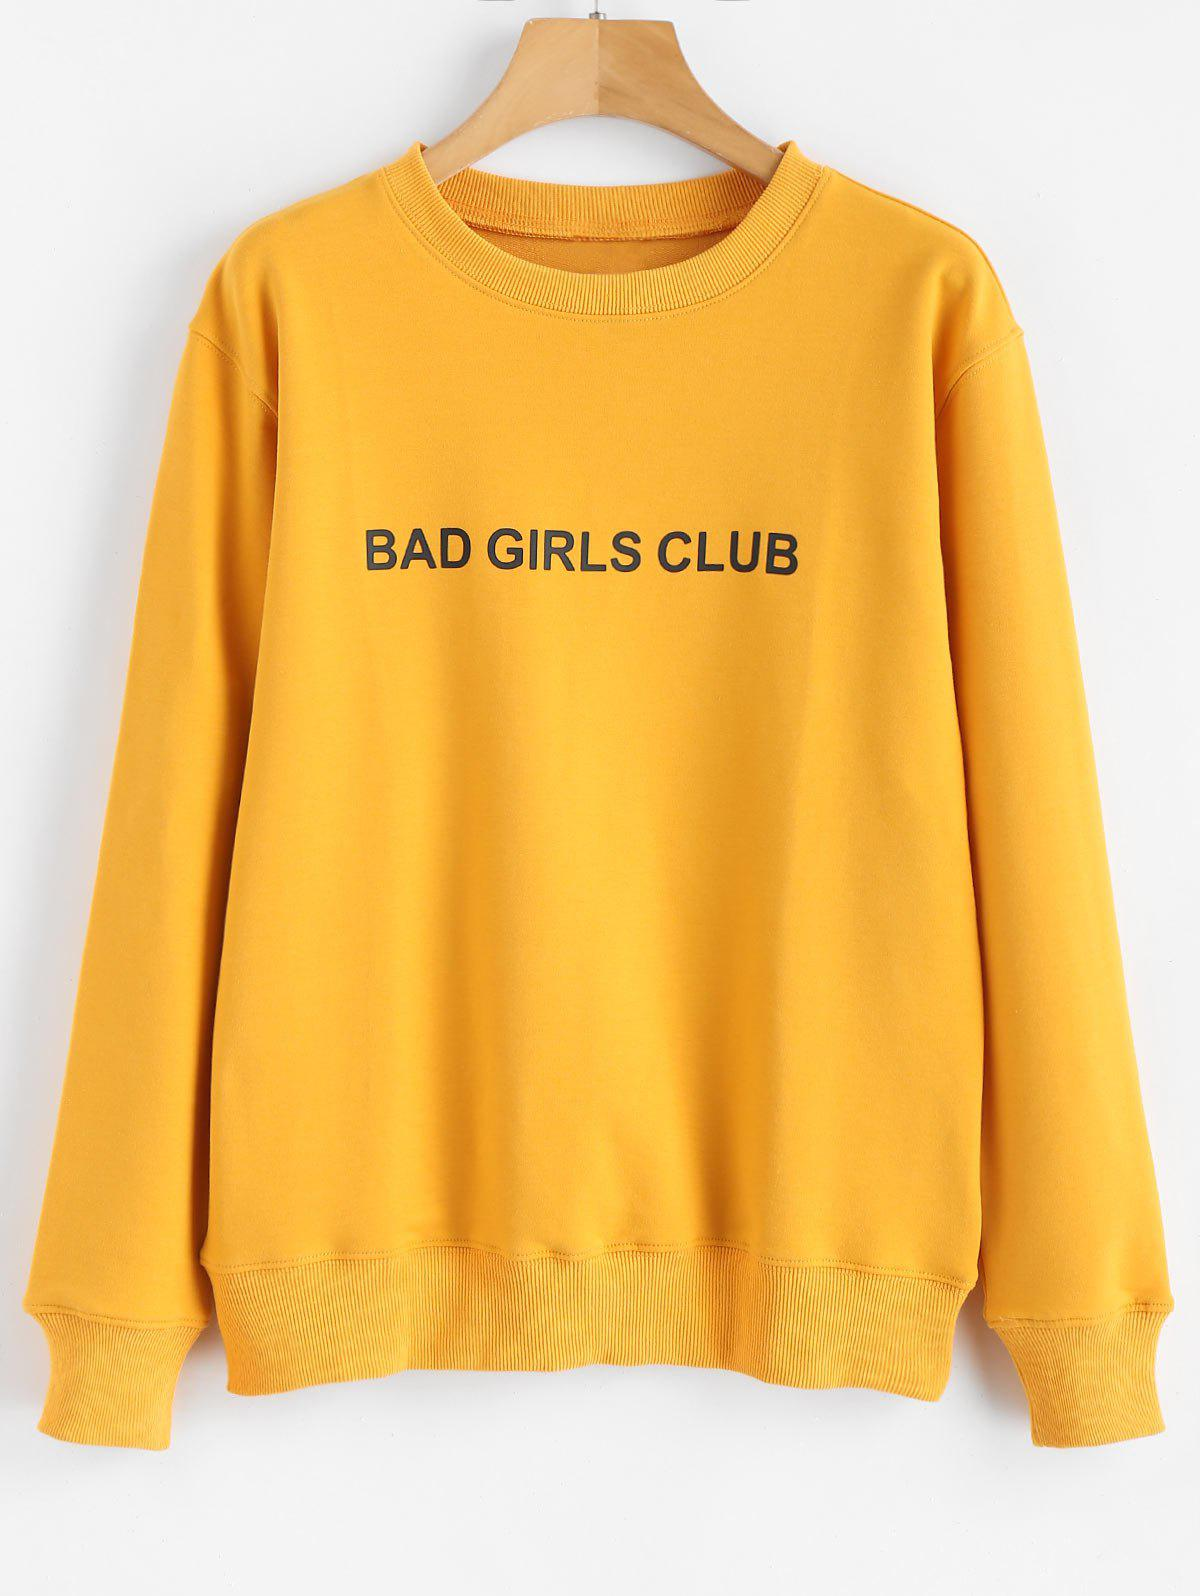 BAD GIRLS CLUB Graphic Pullover Sweatshirt фото